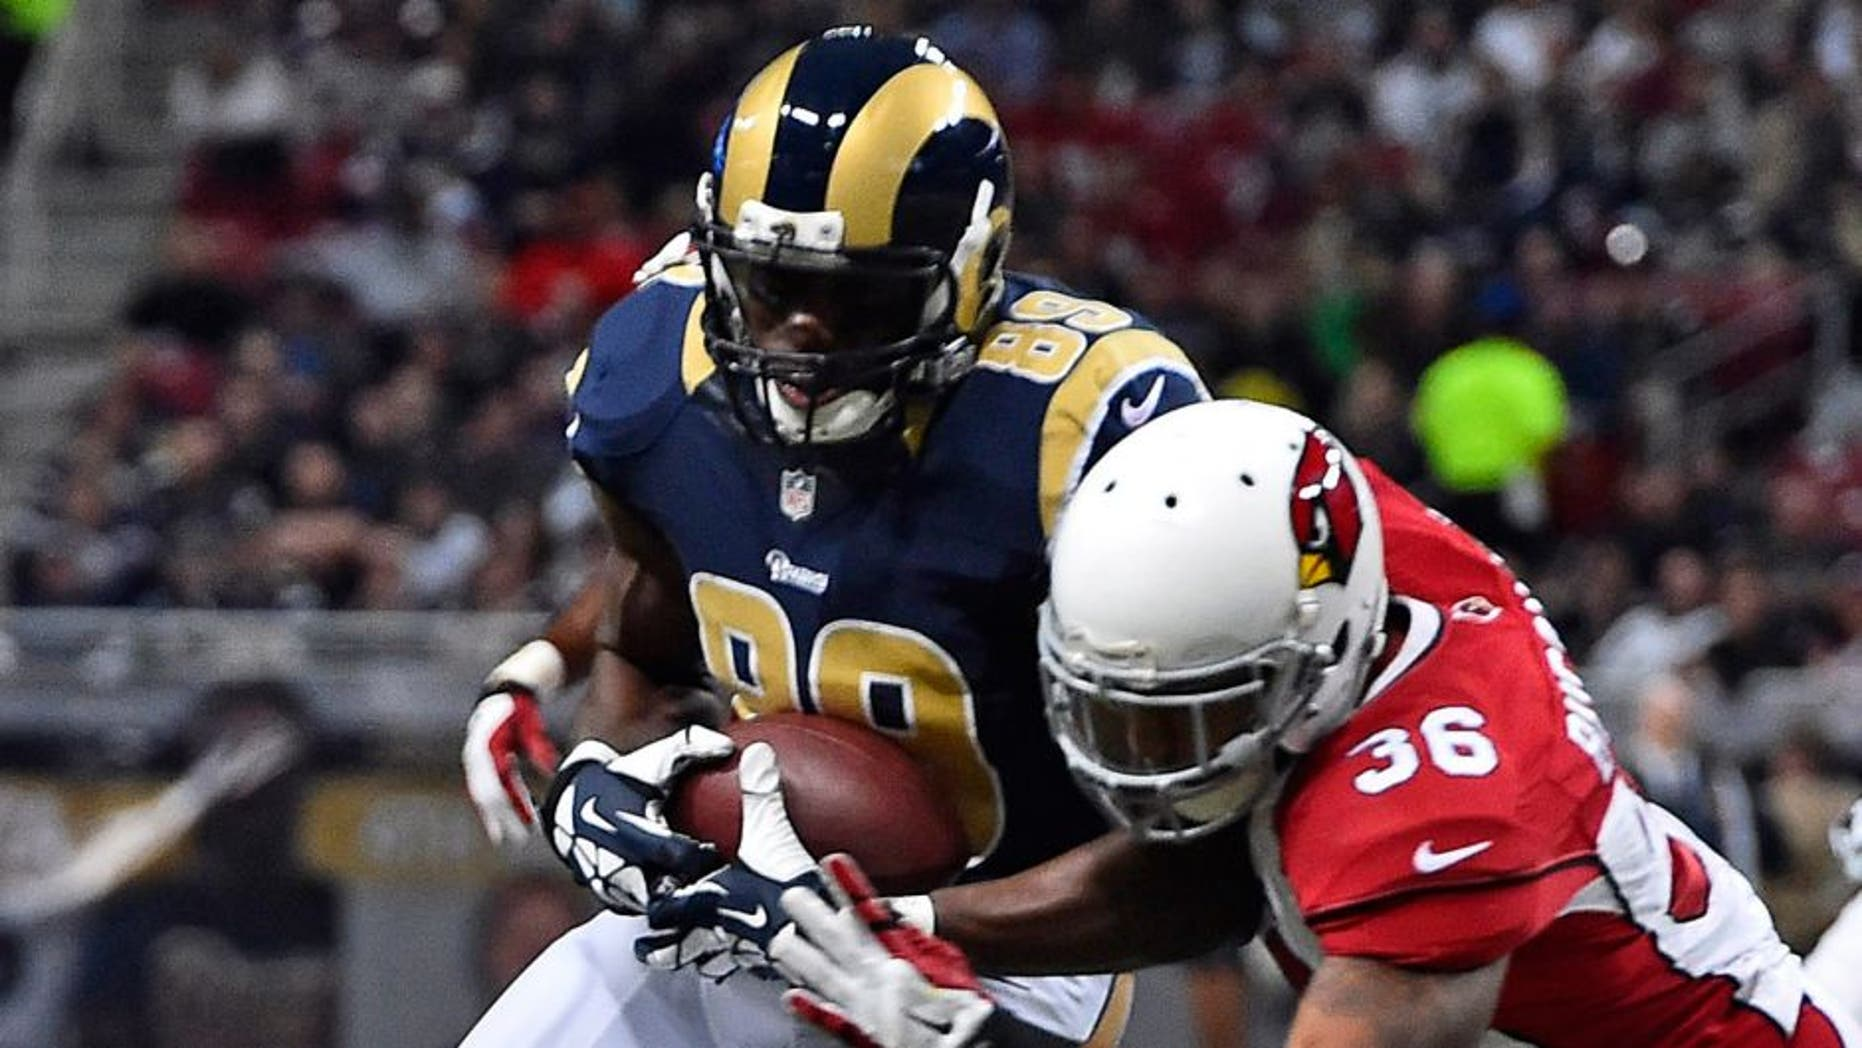 Dec 11, 2014; St. Louis, MO, USA; Arizona Cardinals strong safety Deone Bucannon (36) brings down St. Louis Rams tight end Jared Cook (89) during the first half at the Edward Jones Dome. Mandatory Credit: Jasen Vinlove-USA TODAY Sports